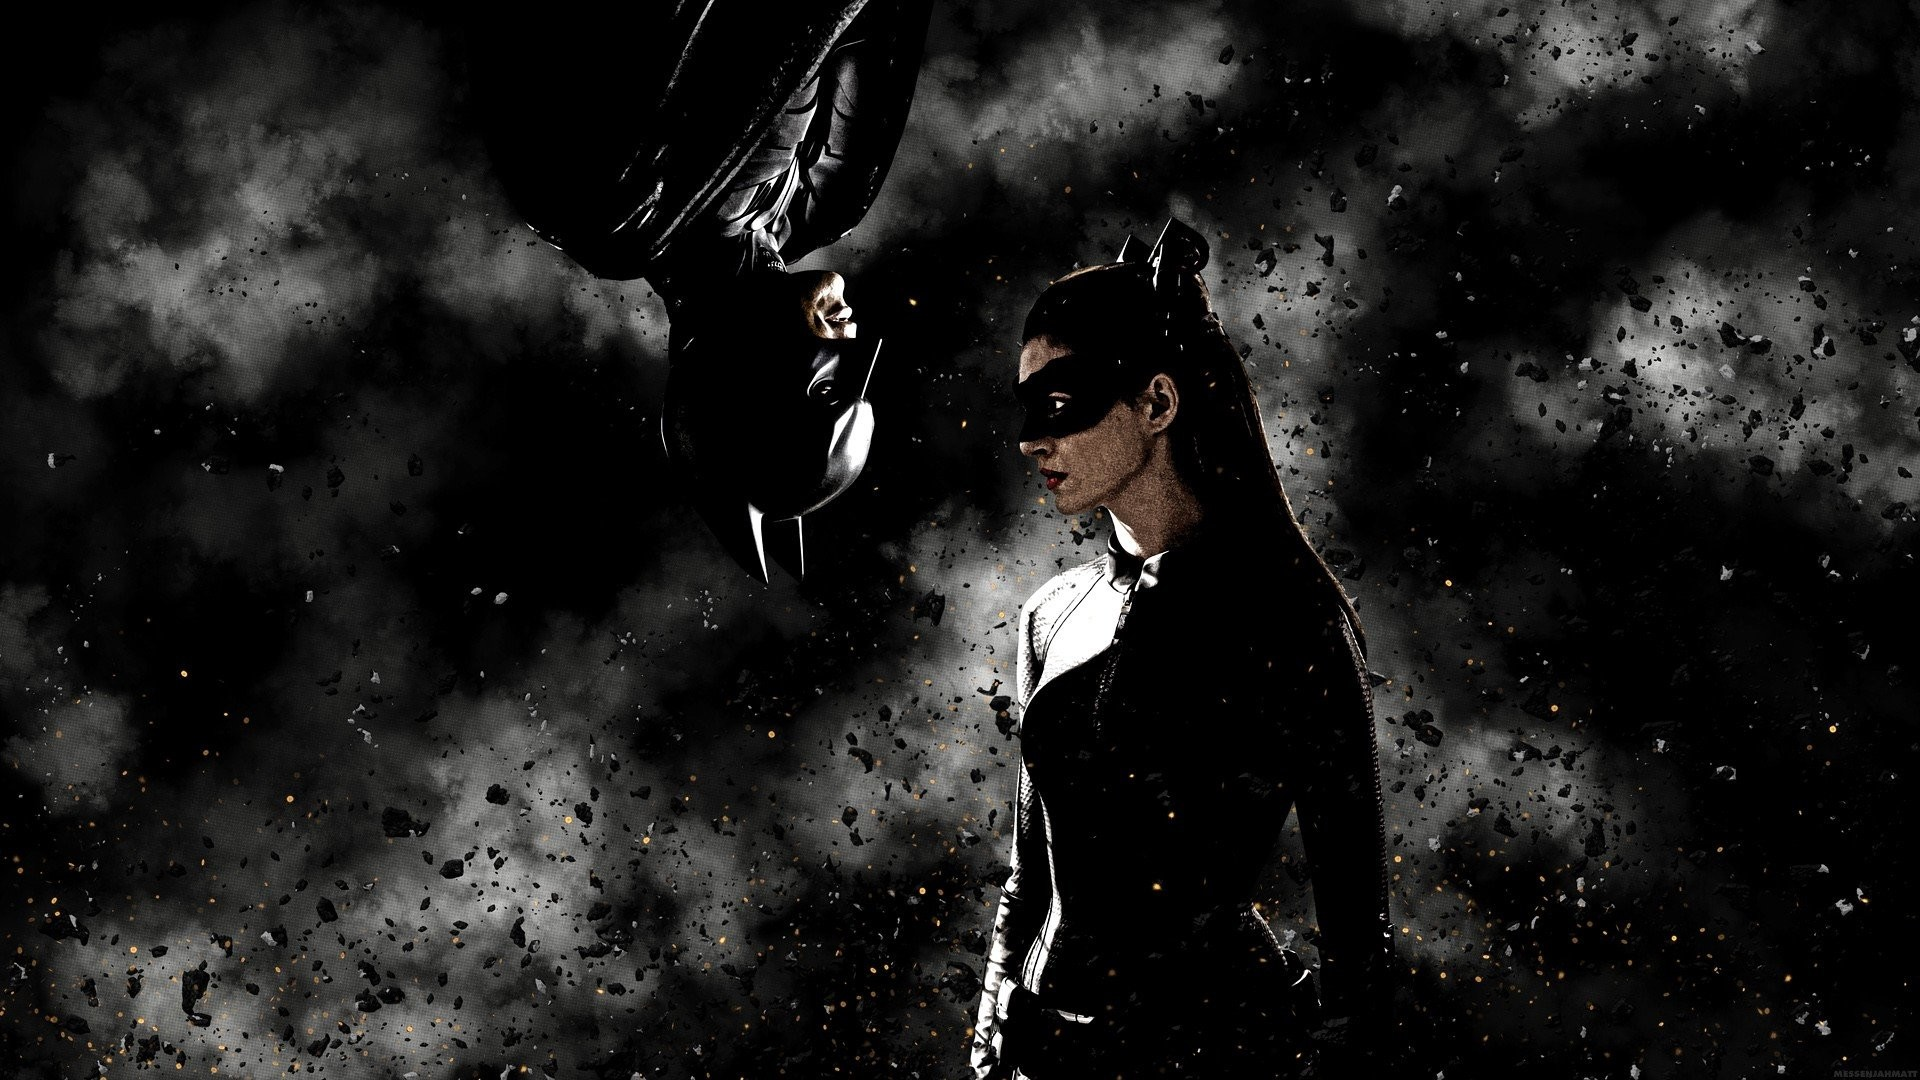 Description Download Catwoman The Dark Knight Rises Movies Wallpaper